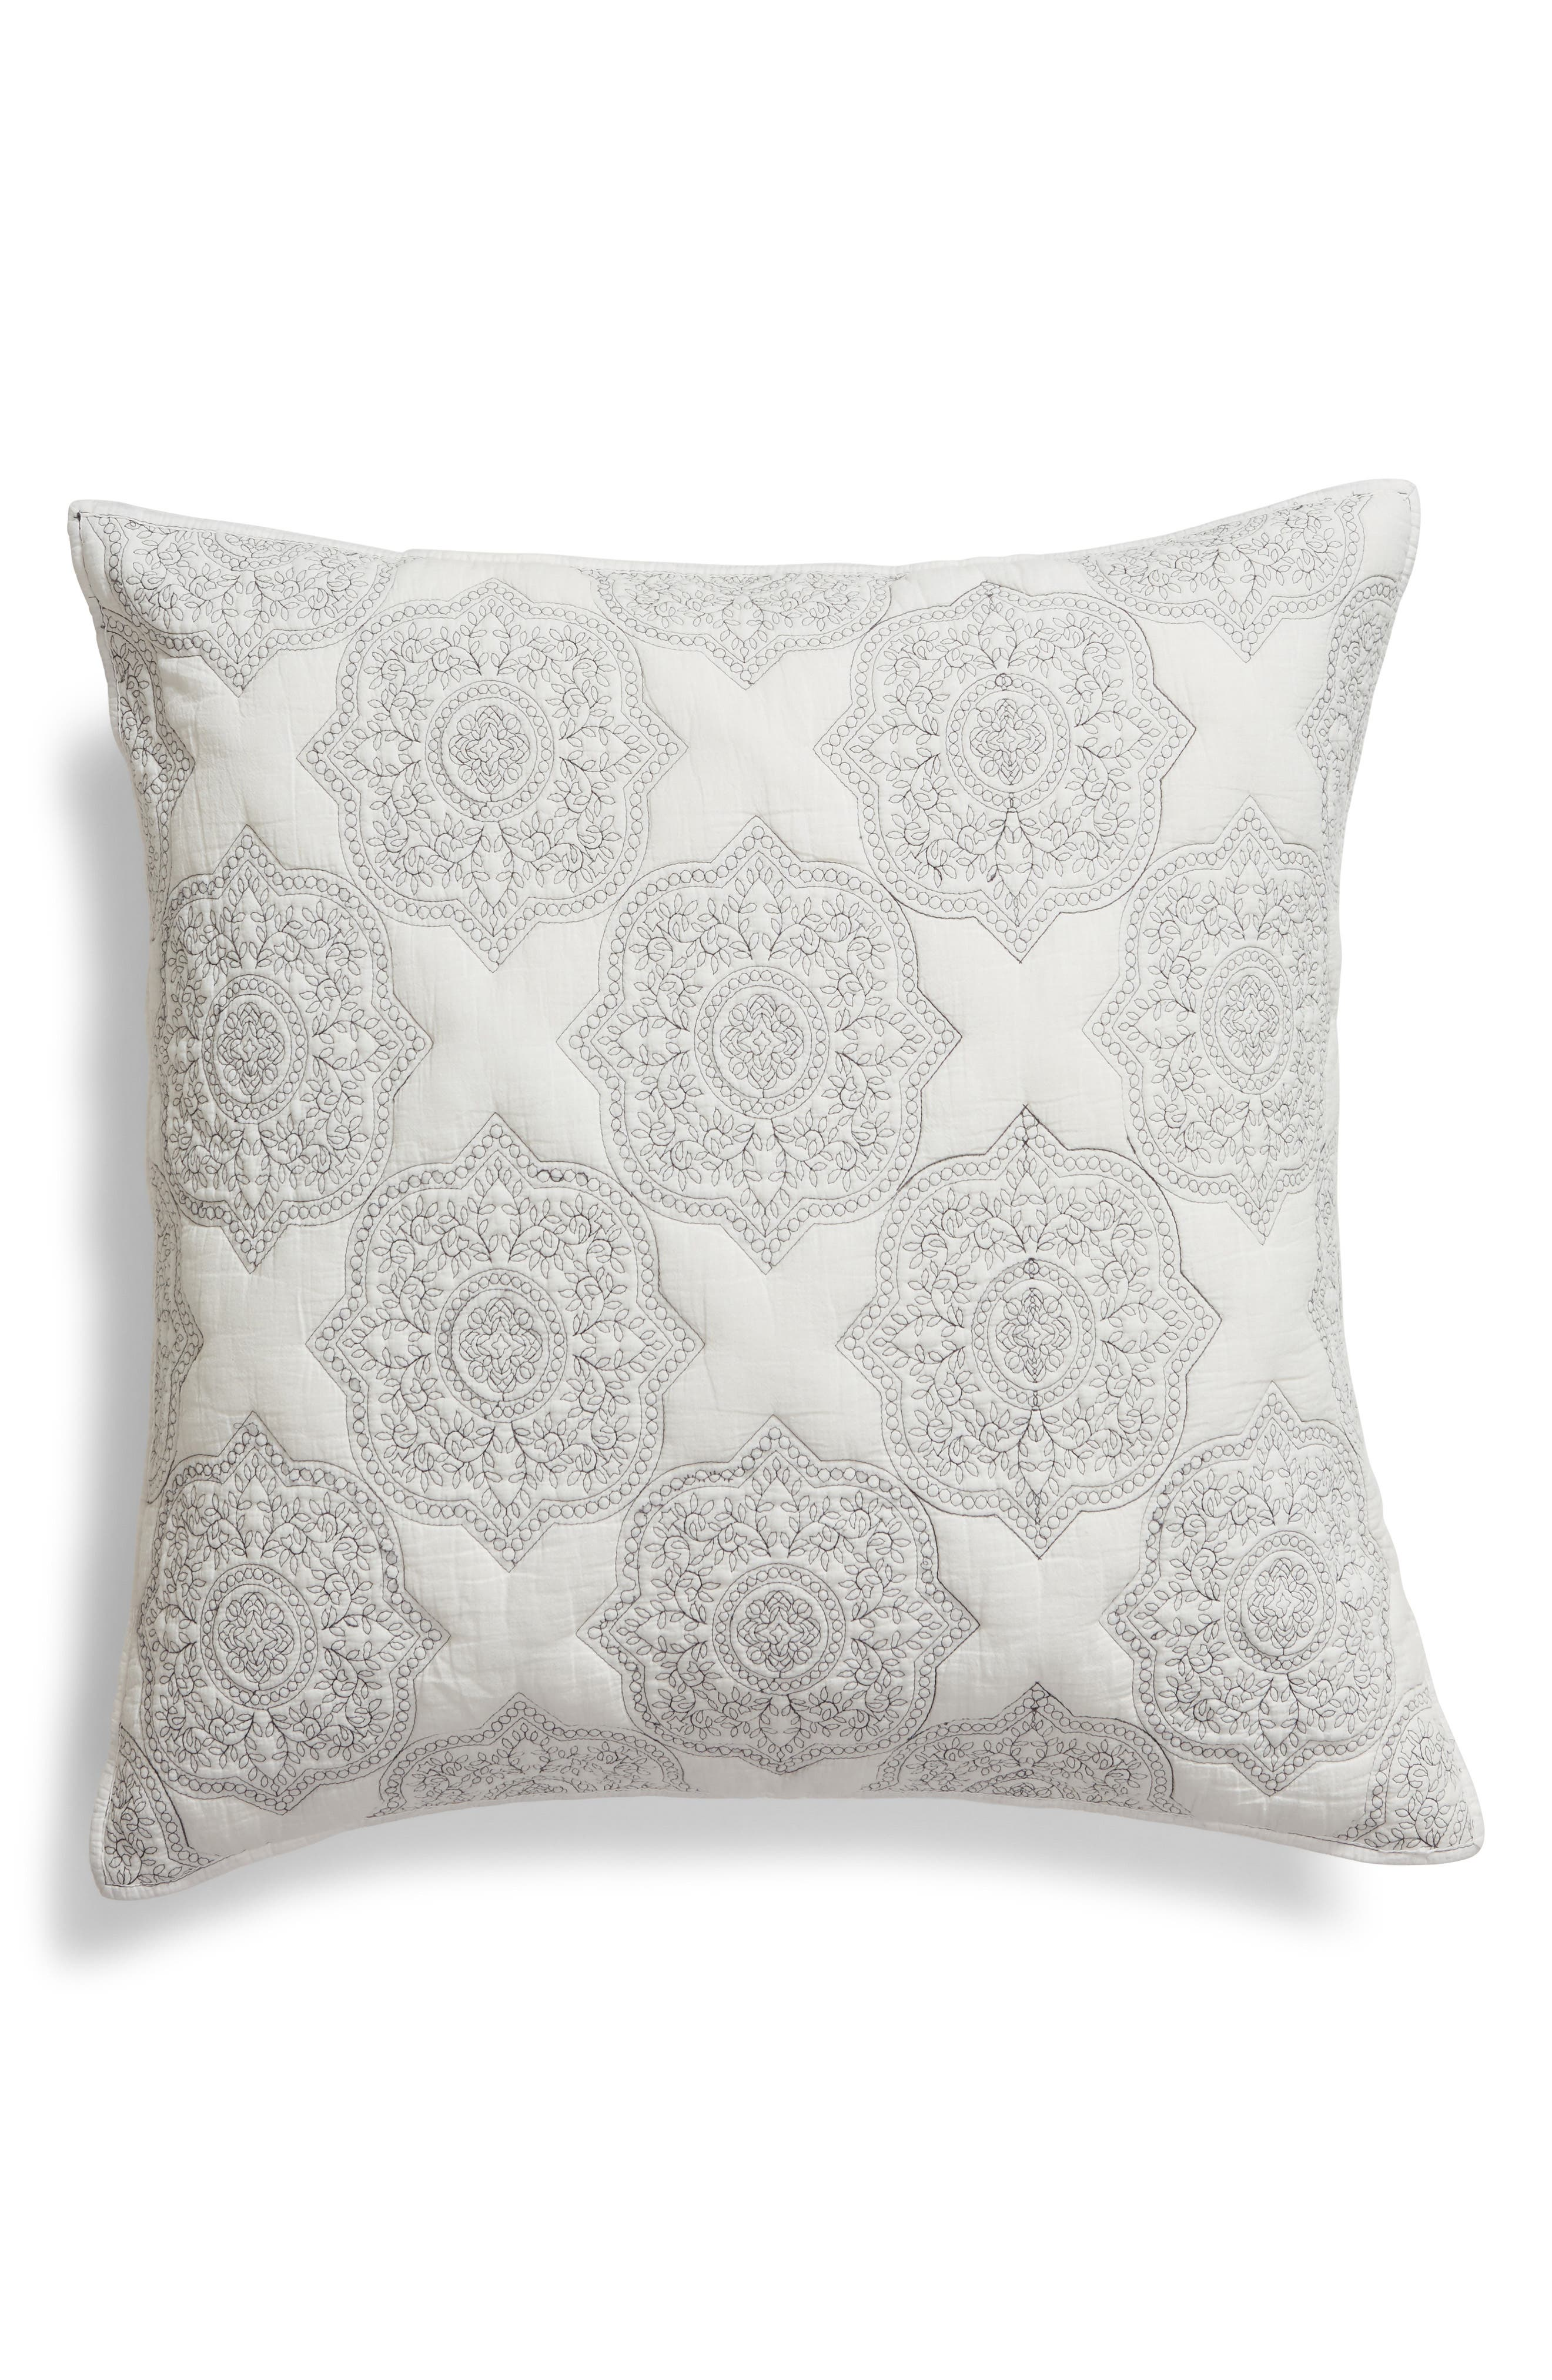 NORDSTROM AT HOME Ria Embroidered Sham, Main, color, IVORY